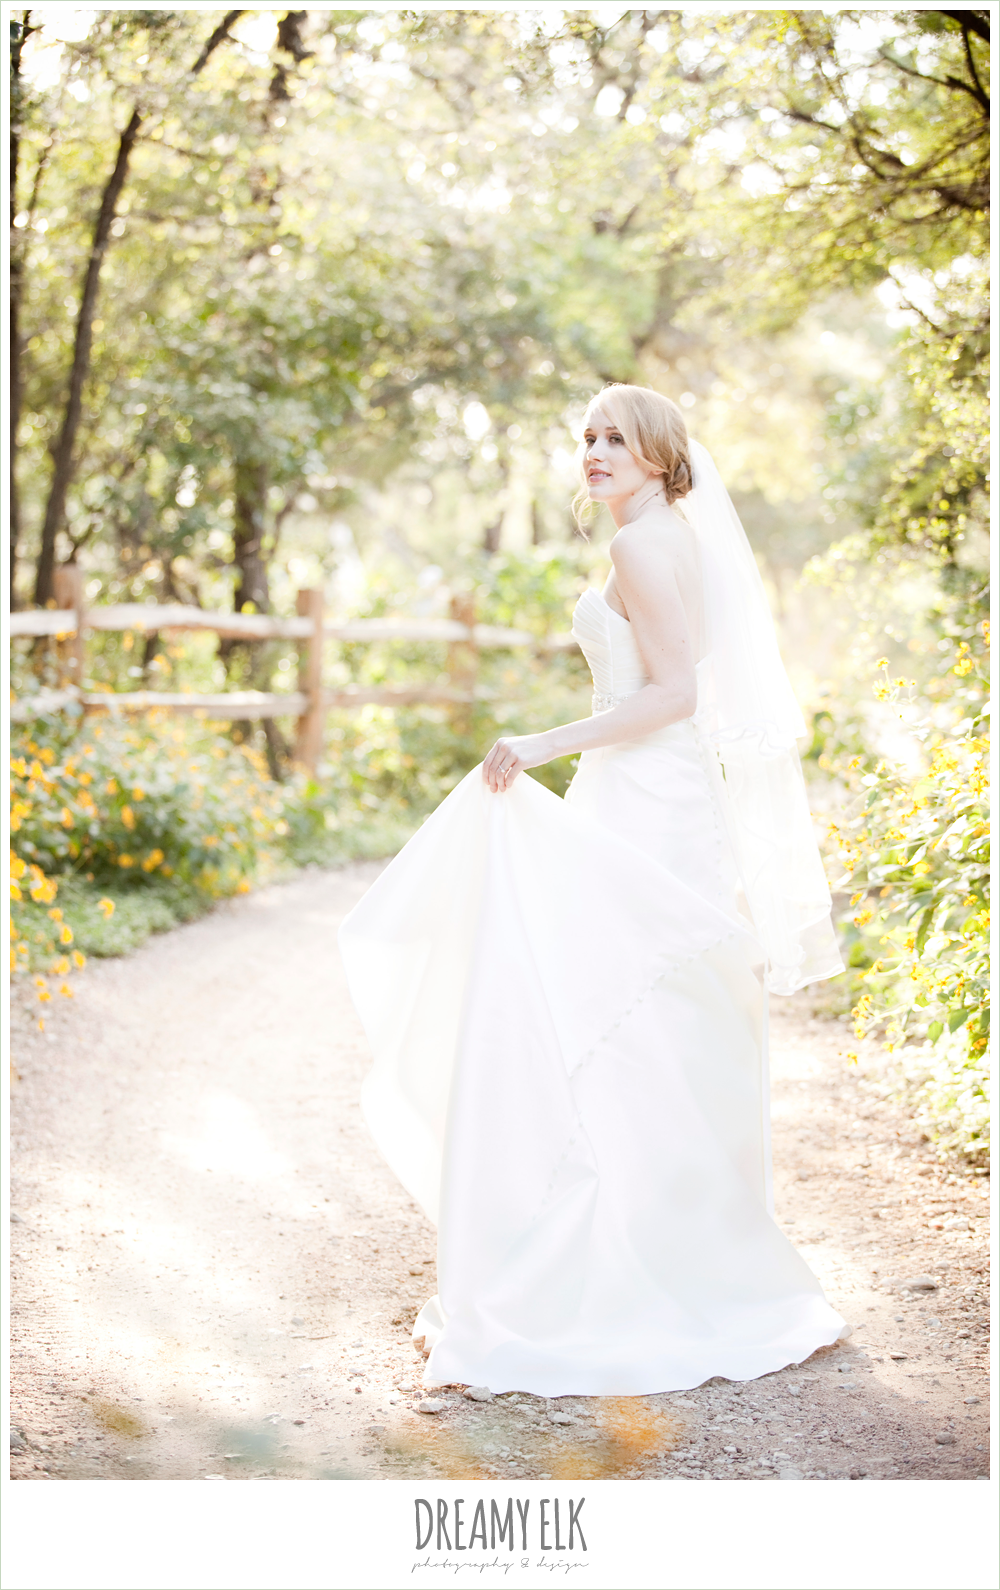 mallory, bridal photo contest, Zilker botanical garden